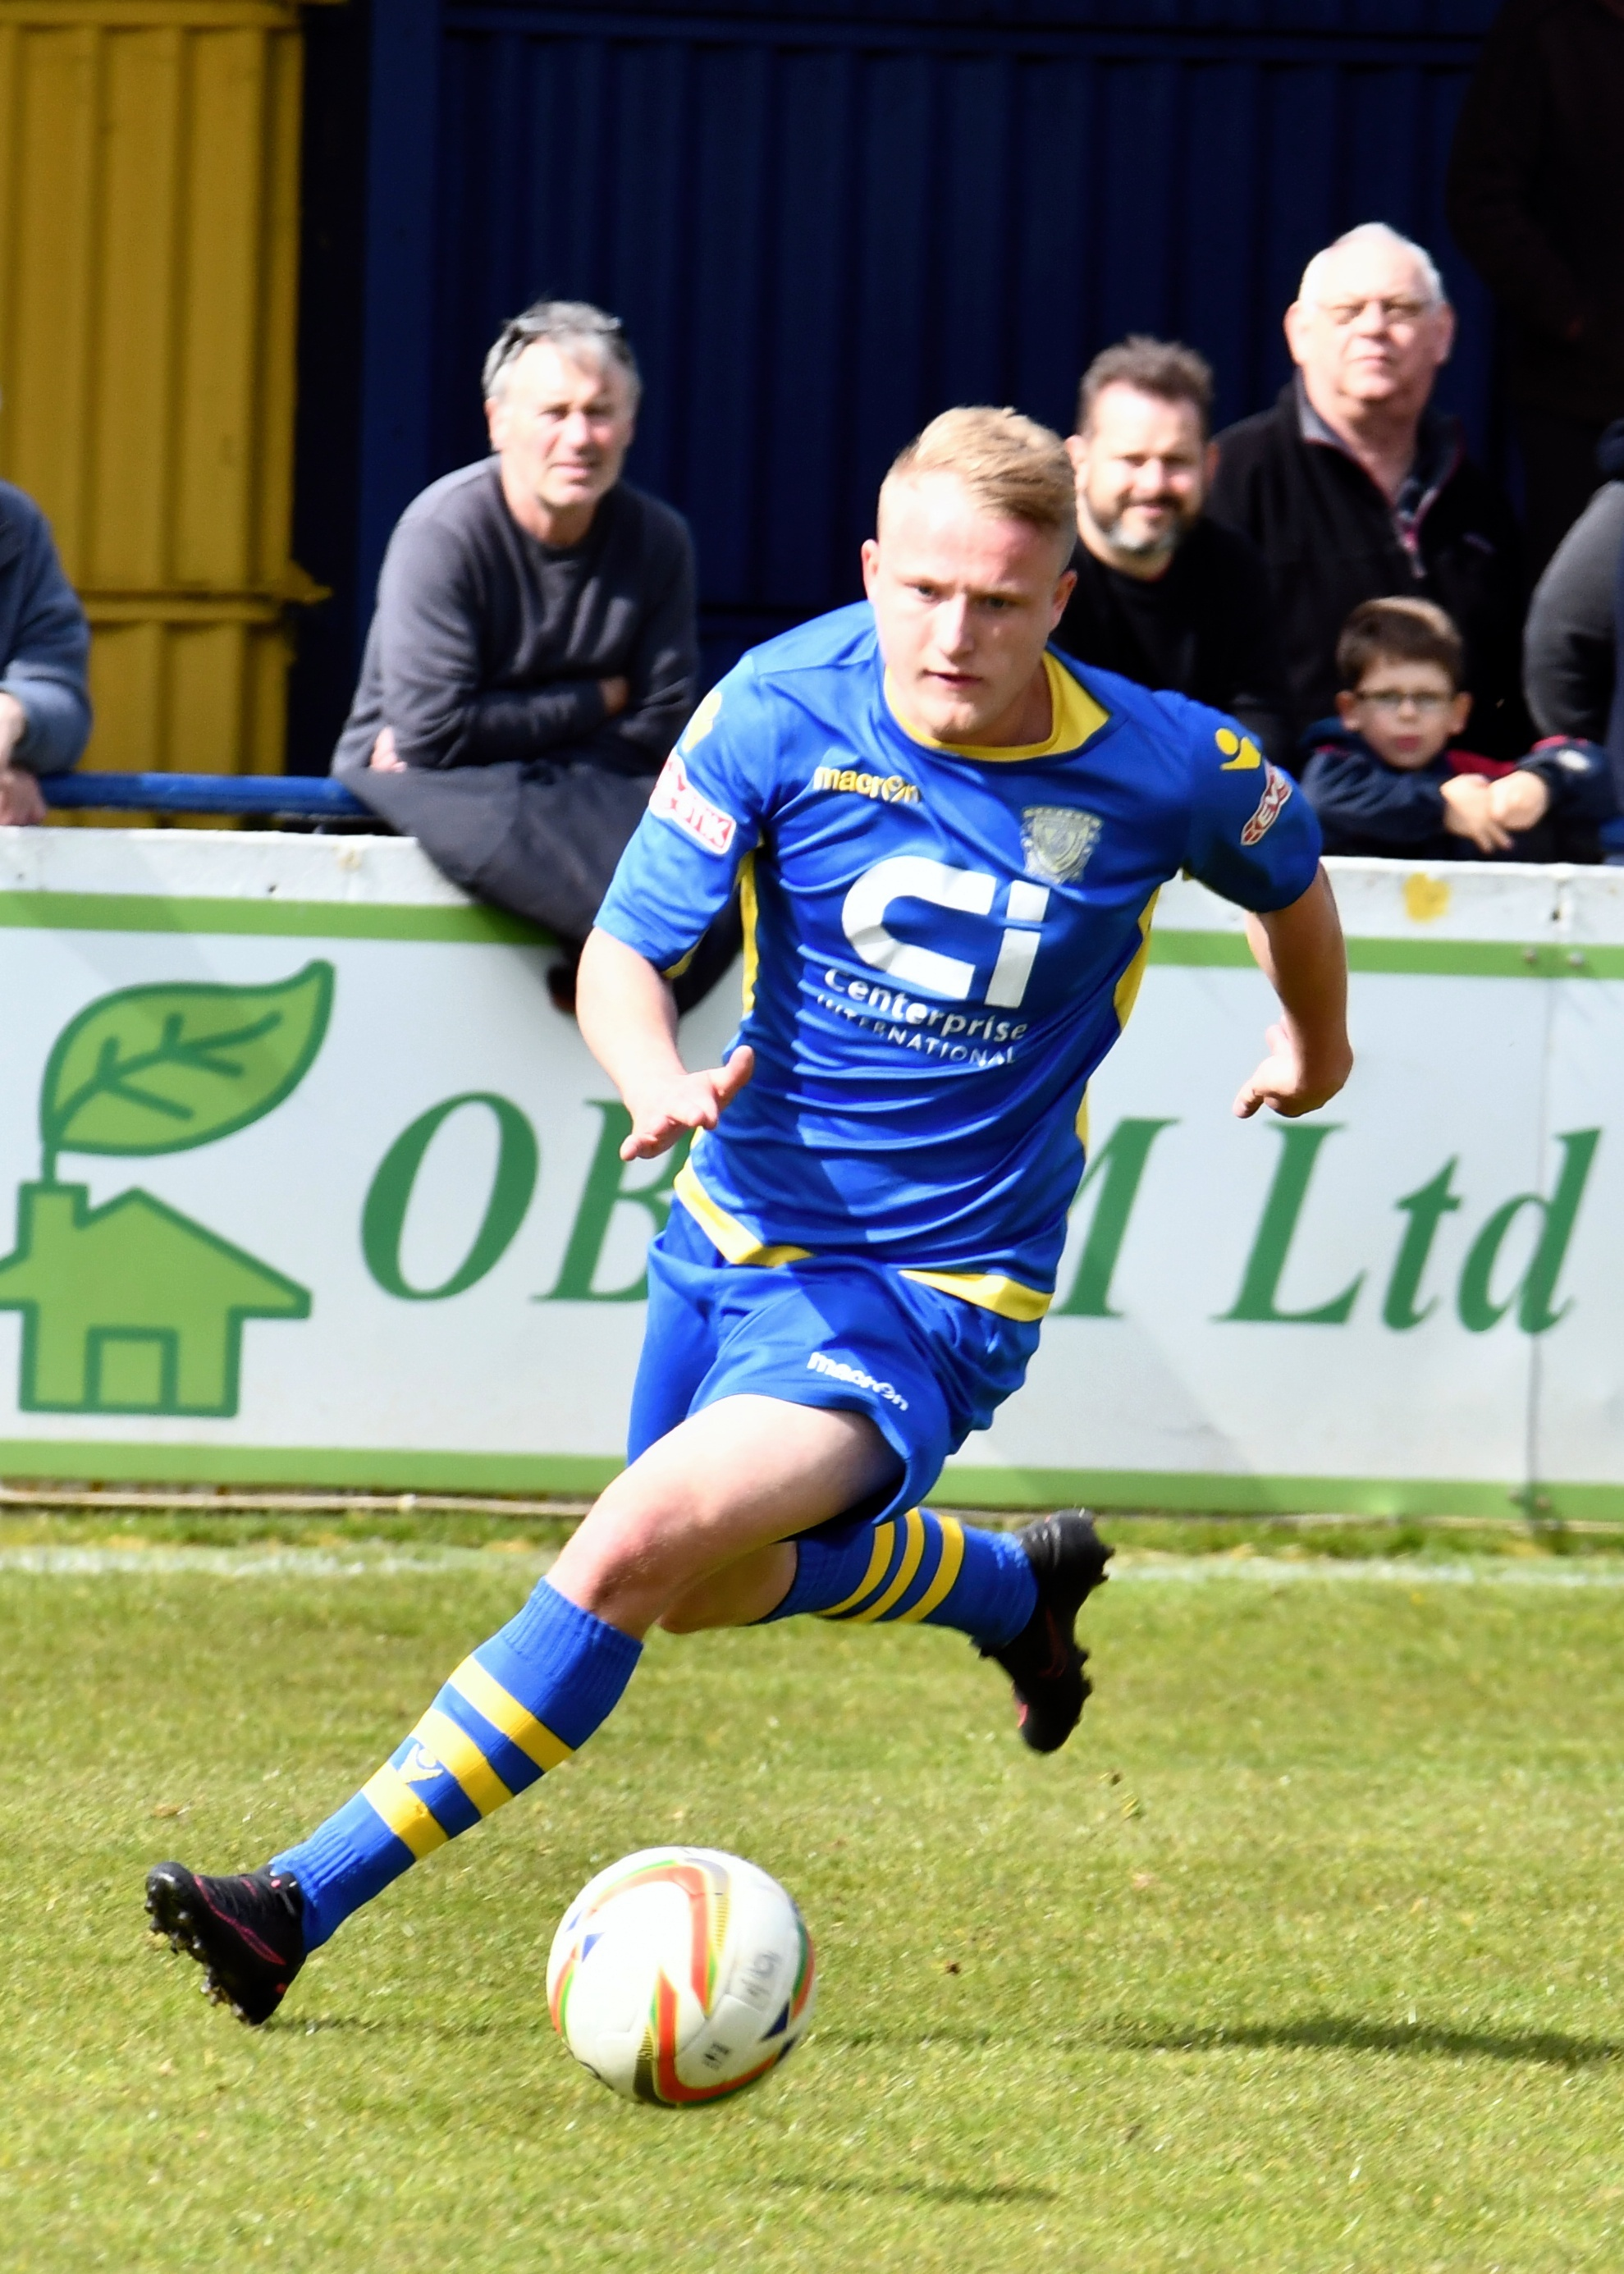 Football: Basingstoke Town V Cinderford.at the Camrose ground,  Basingstoke.Photograph By: Sean Dillow.www.TheBigCheesePhotography.co.uk